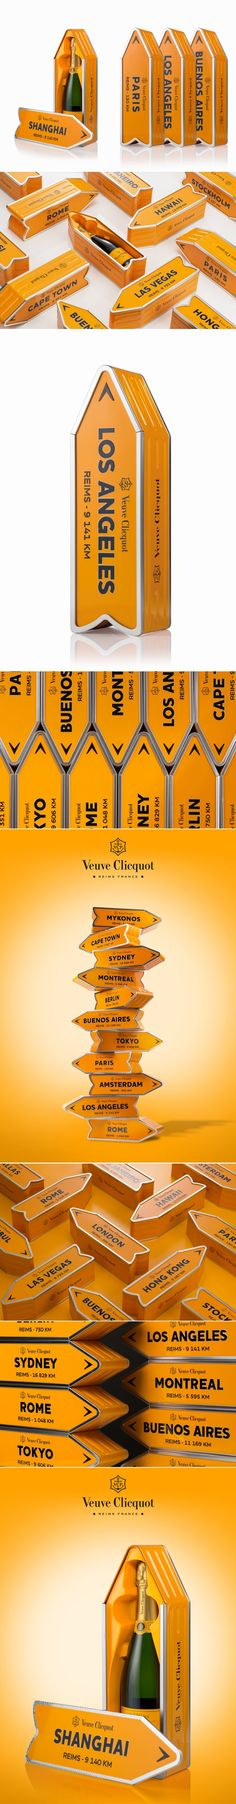 Check Out The Beautiful Packaging for Clicquot Arrow — The Dieline | Packaging & Branding Design & Innovation News